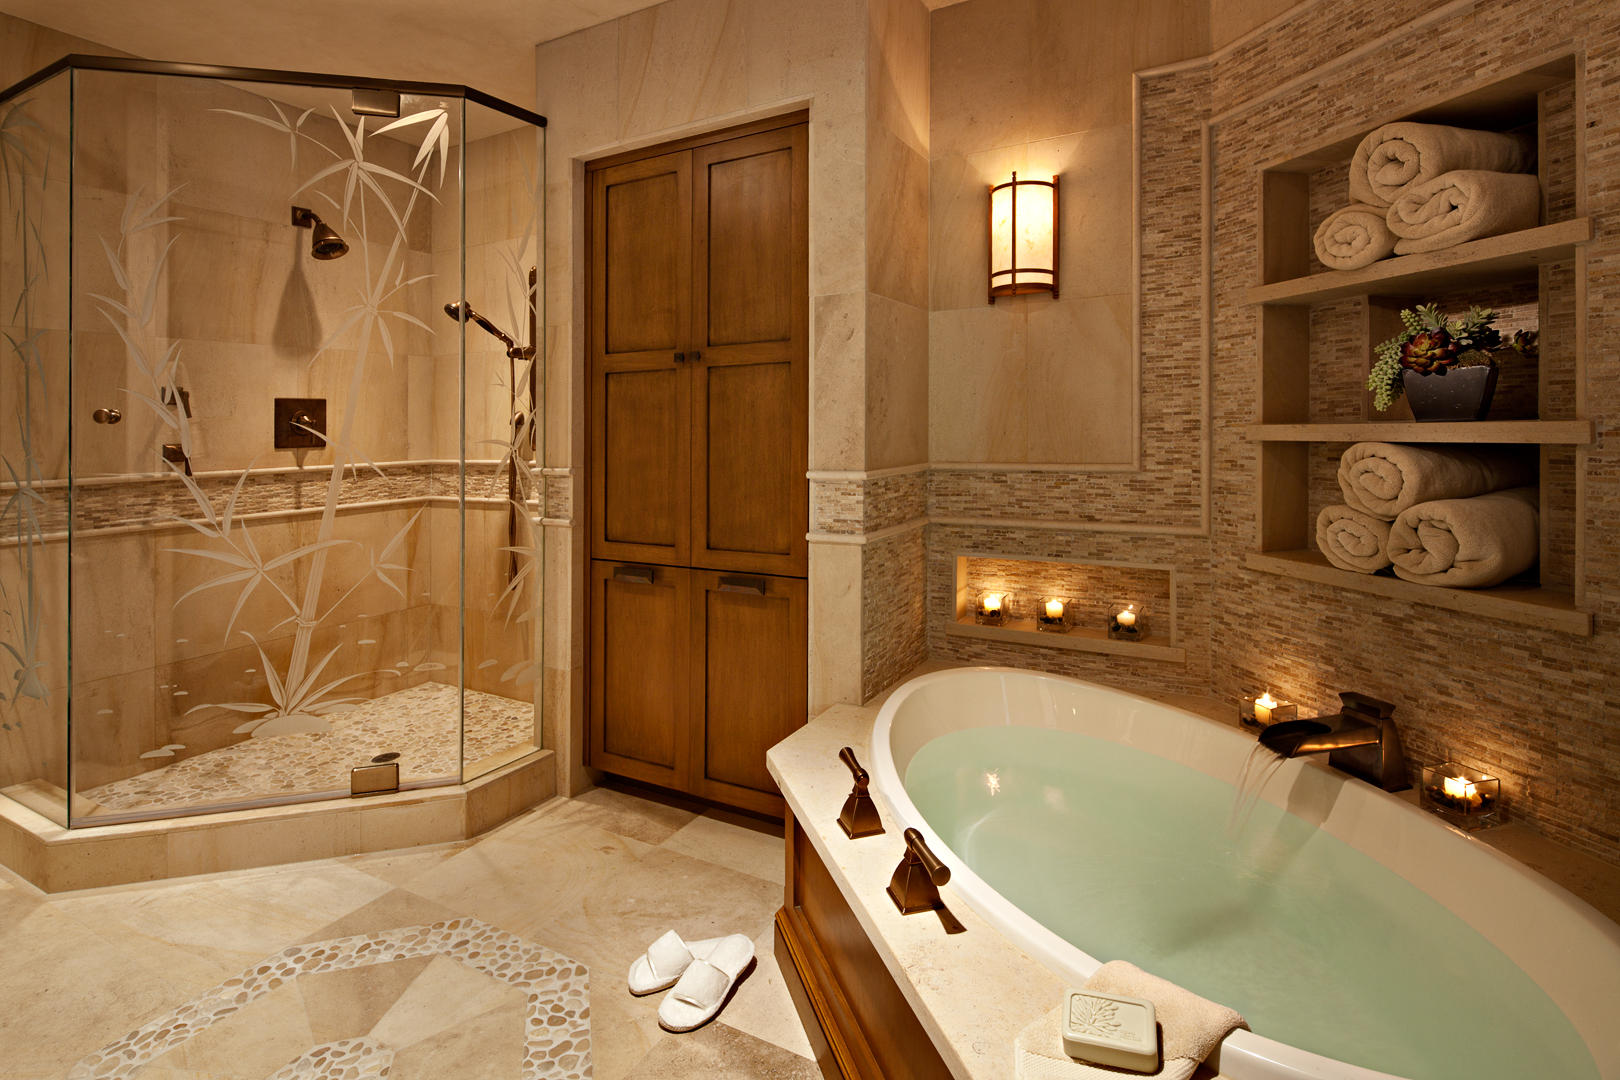 bathroom spa ideas - The Best Design Ideas for Hot Tubs ...